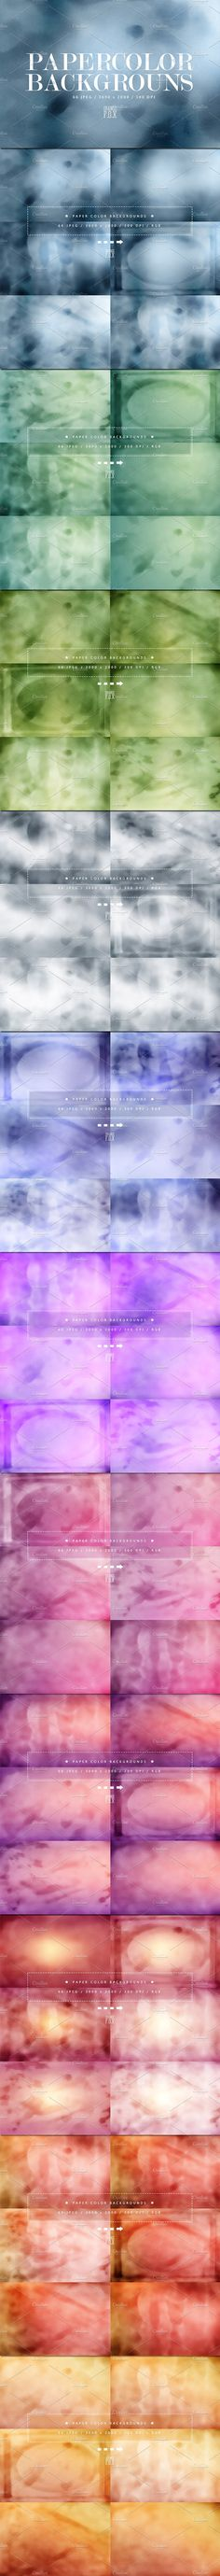 Paper Color Backgrounds by OrangeFox on @creativemarket  #WATERCOLOR  #TEXTURE #BACKGROUND #PAPERWATERCOLOR  #DIGITAL #PAPERDIGITAL #PAPER #HAND  #PAINTEDDIRTY #STAINED #GRUNGE# SCRAPBOOK #BRUSH #PAINTED #ABSTRACT #BLUE  #pinkbackground #cloud